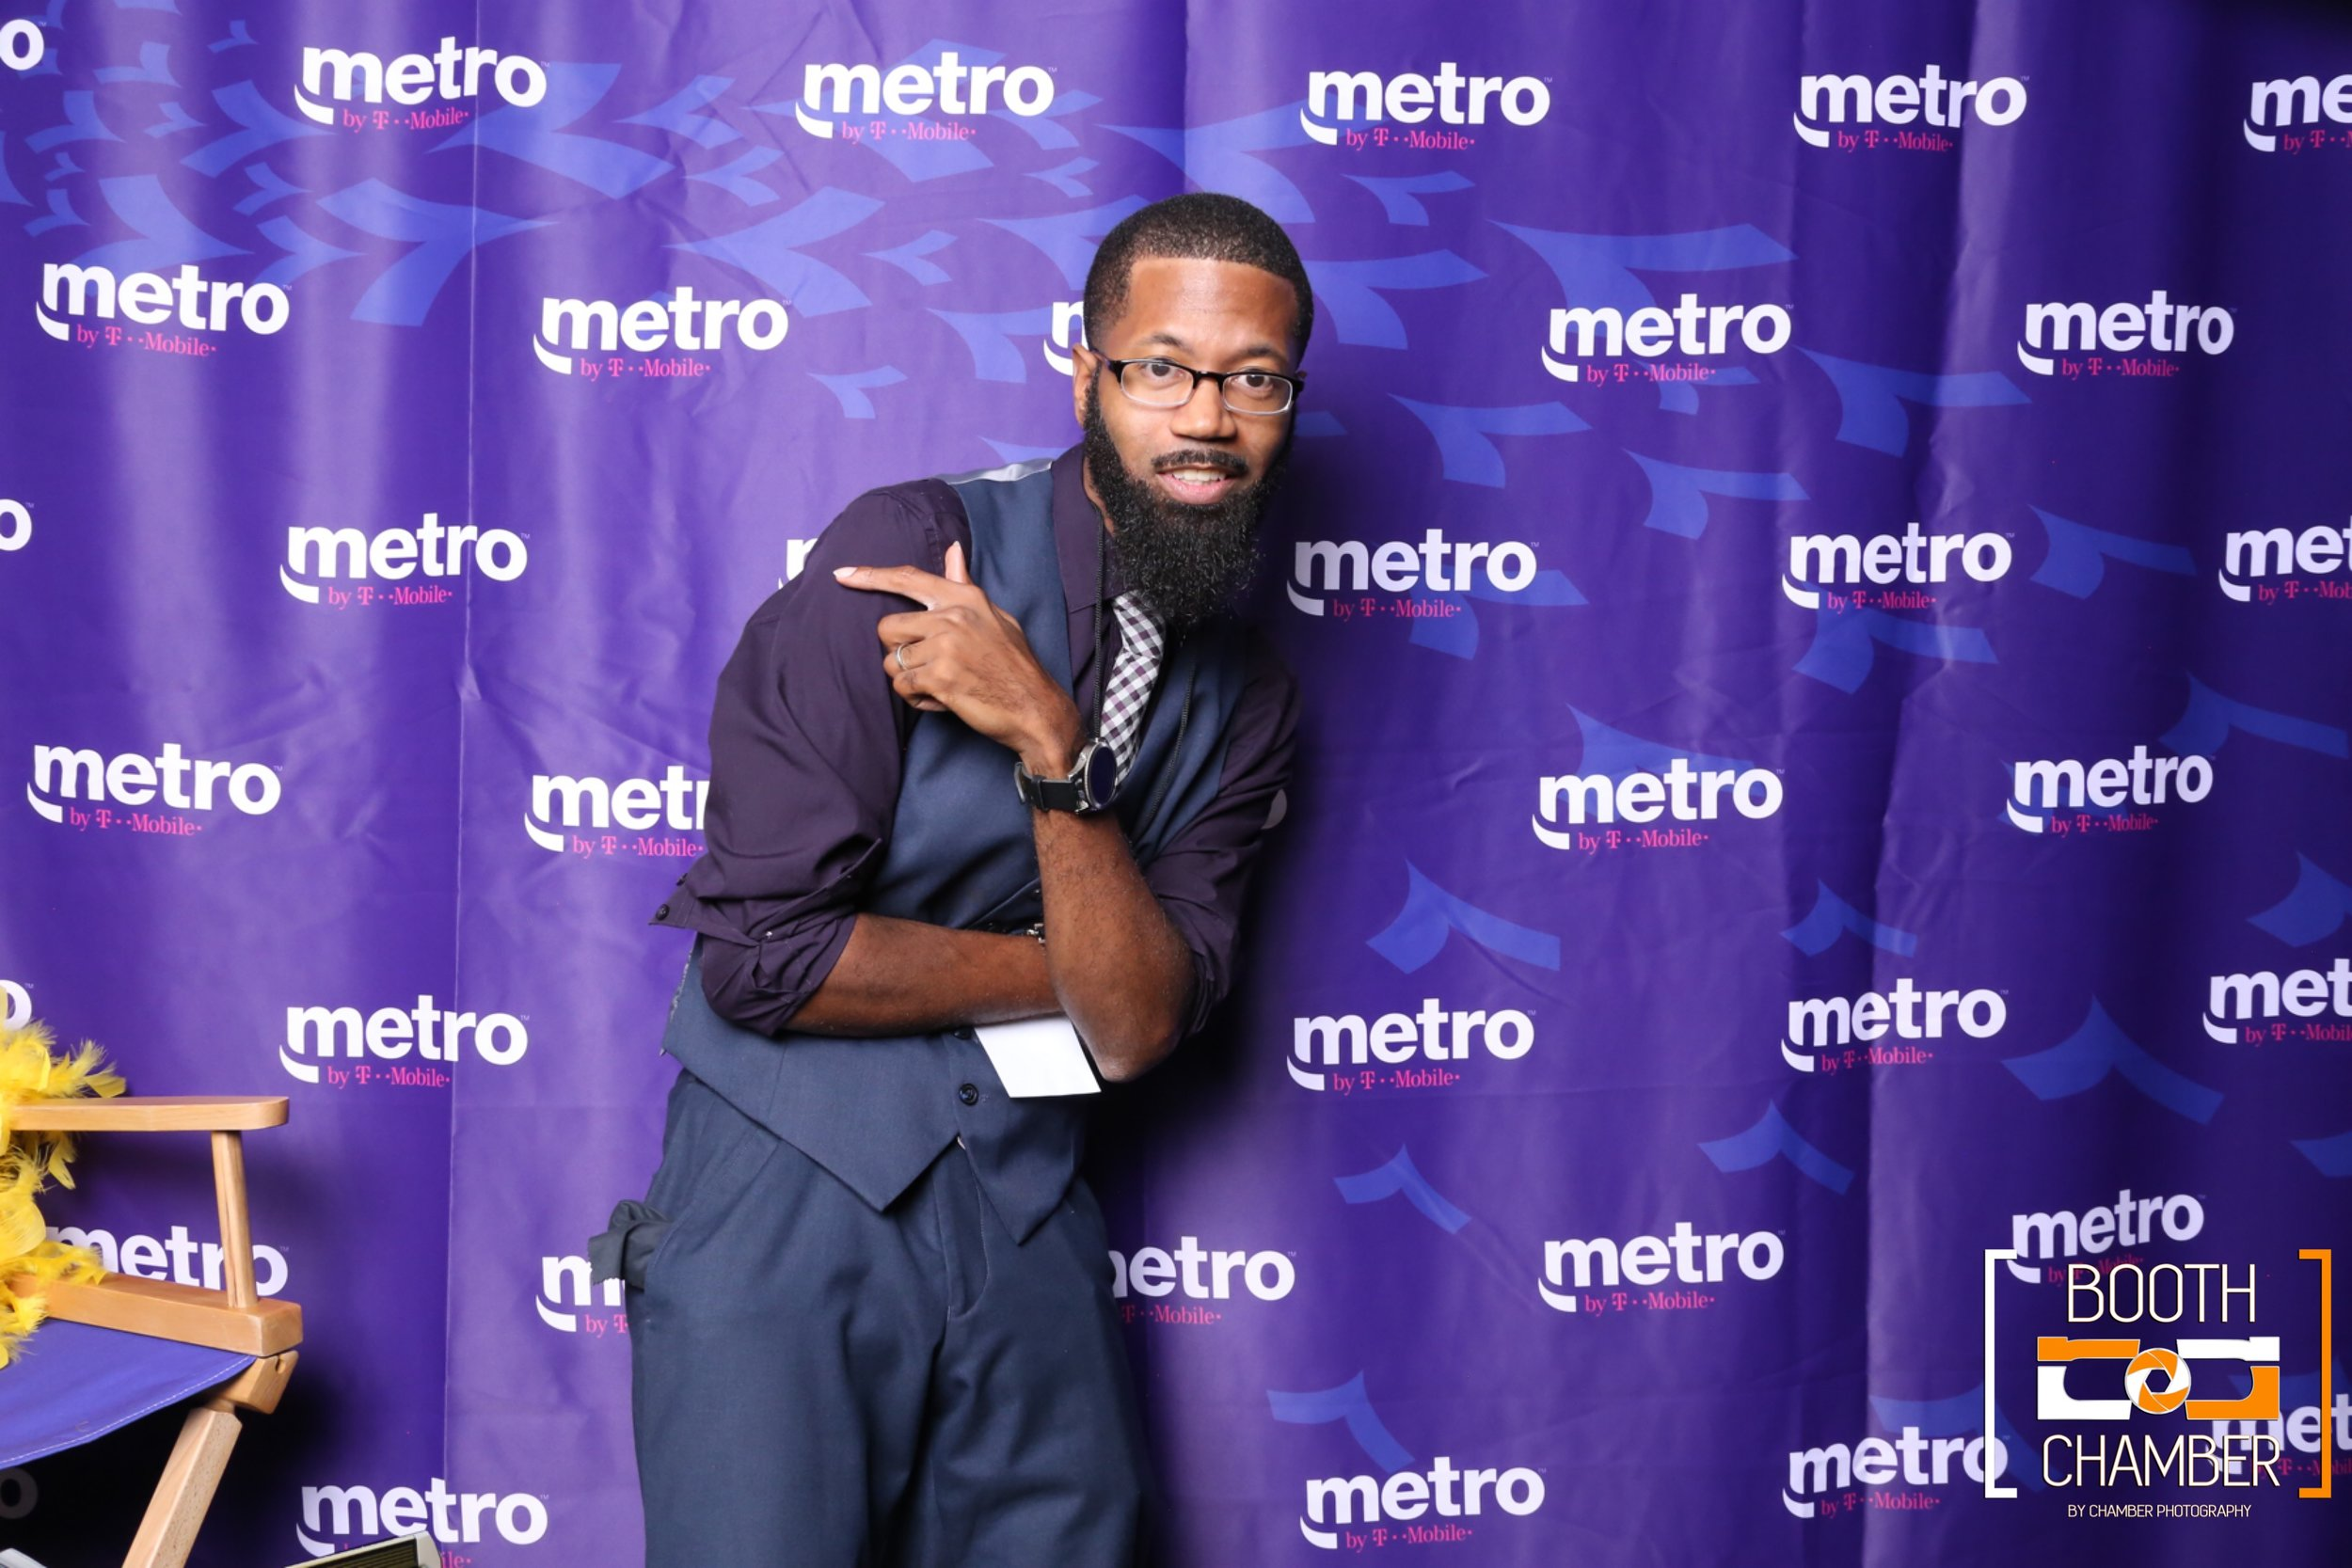 Booth Chamber Photo Booth Beat the Runway Antoine Hart Orlando _7 (7).jpeg